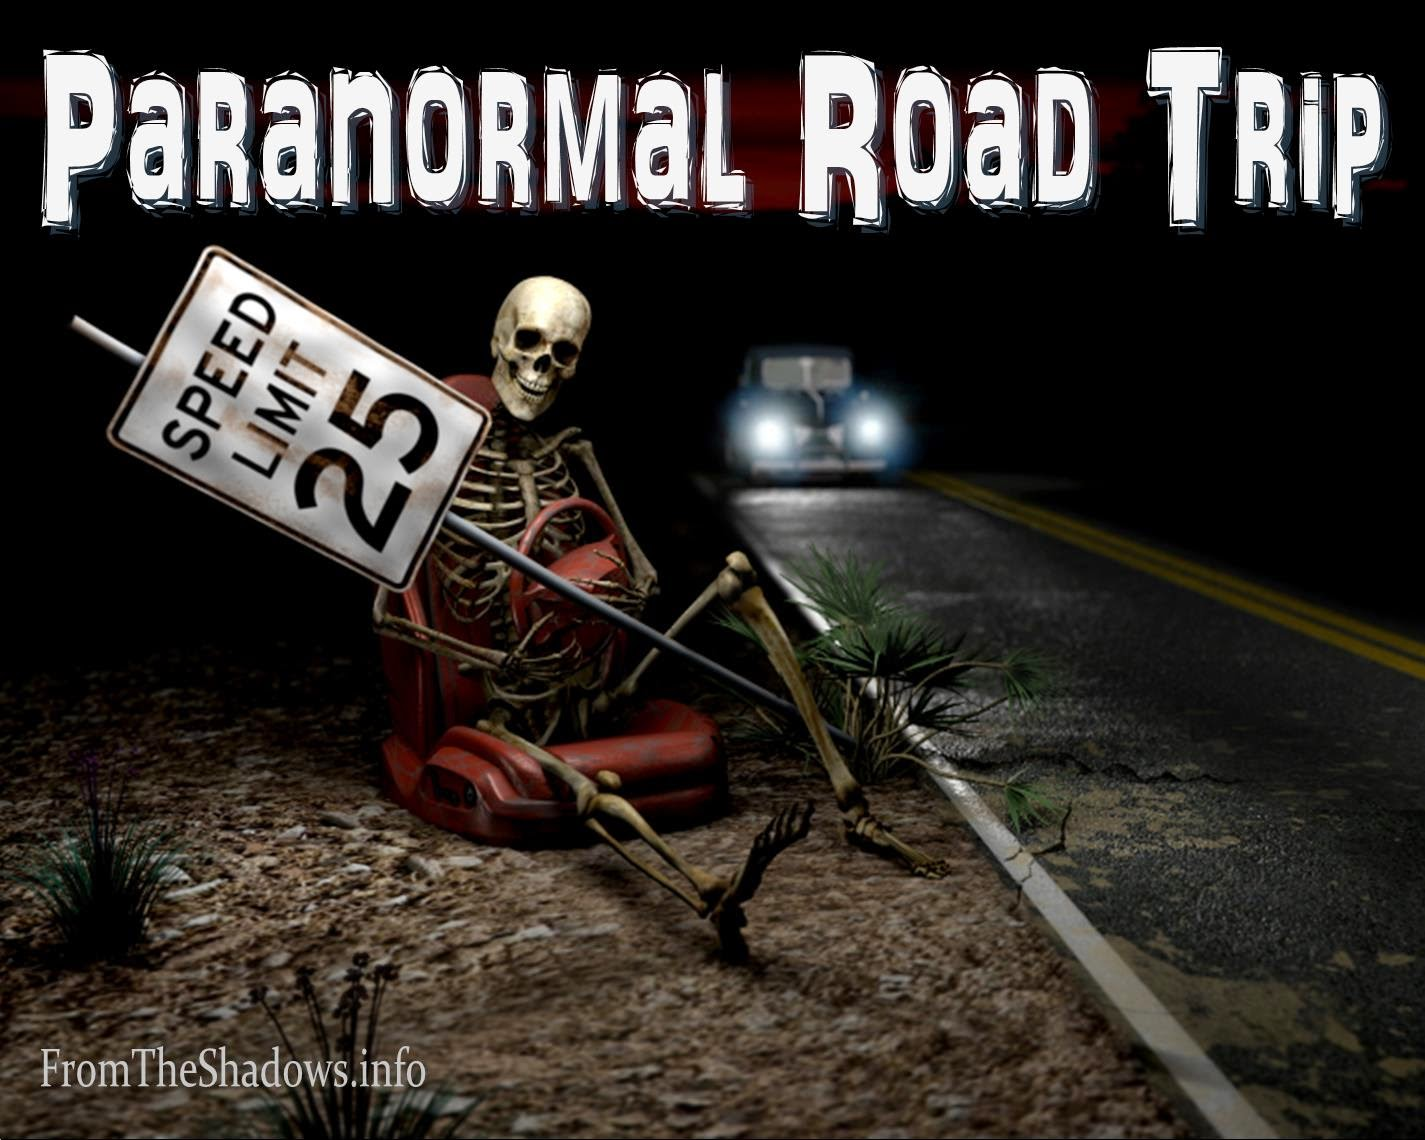 Paranormal Road Trip: Washington D.C. with R.S. Belcher